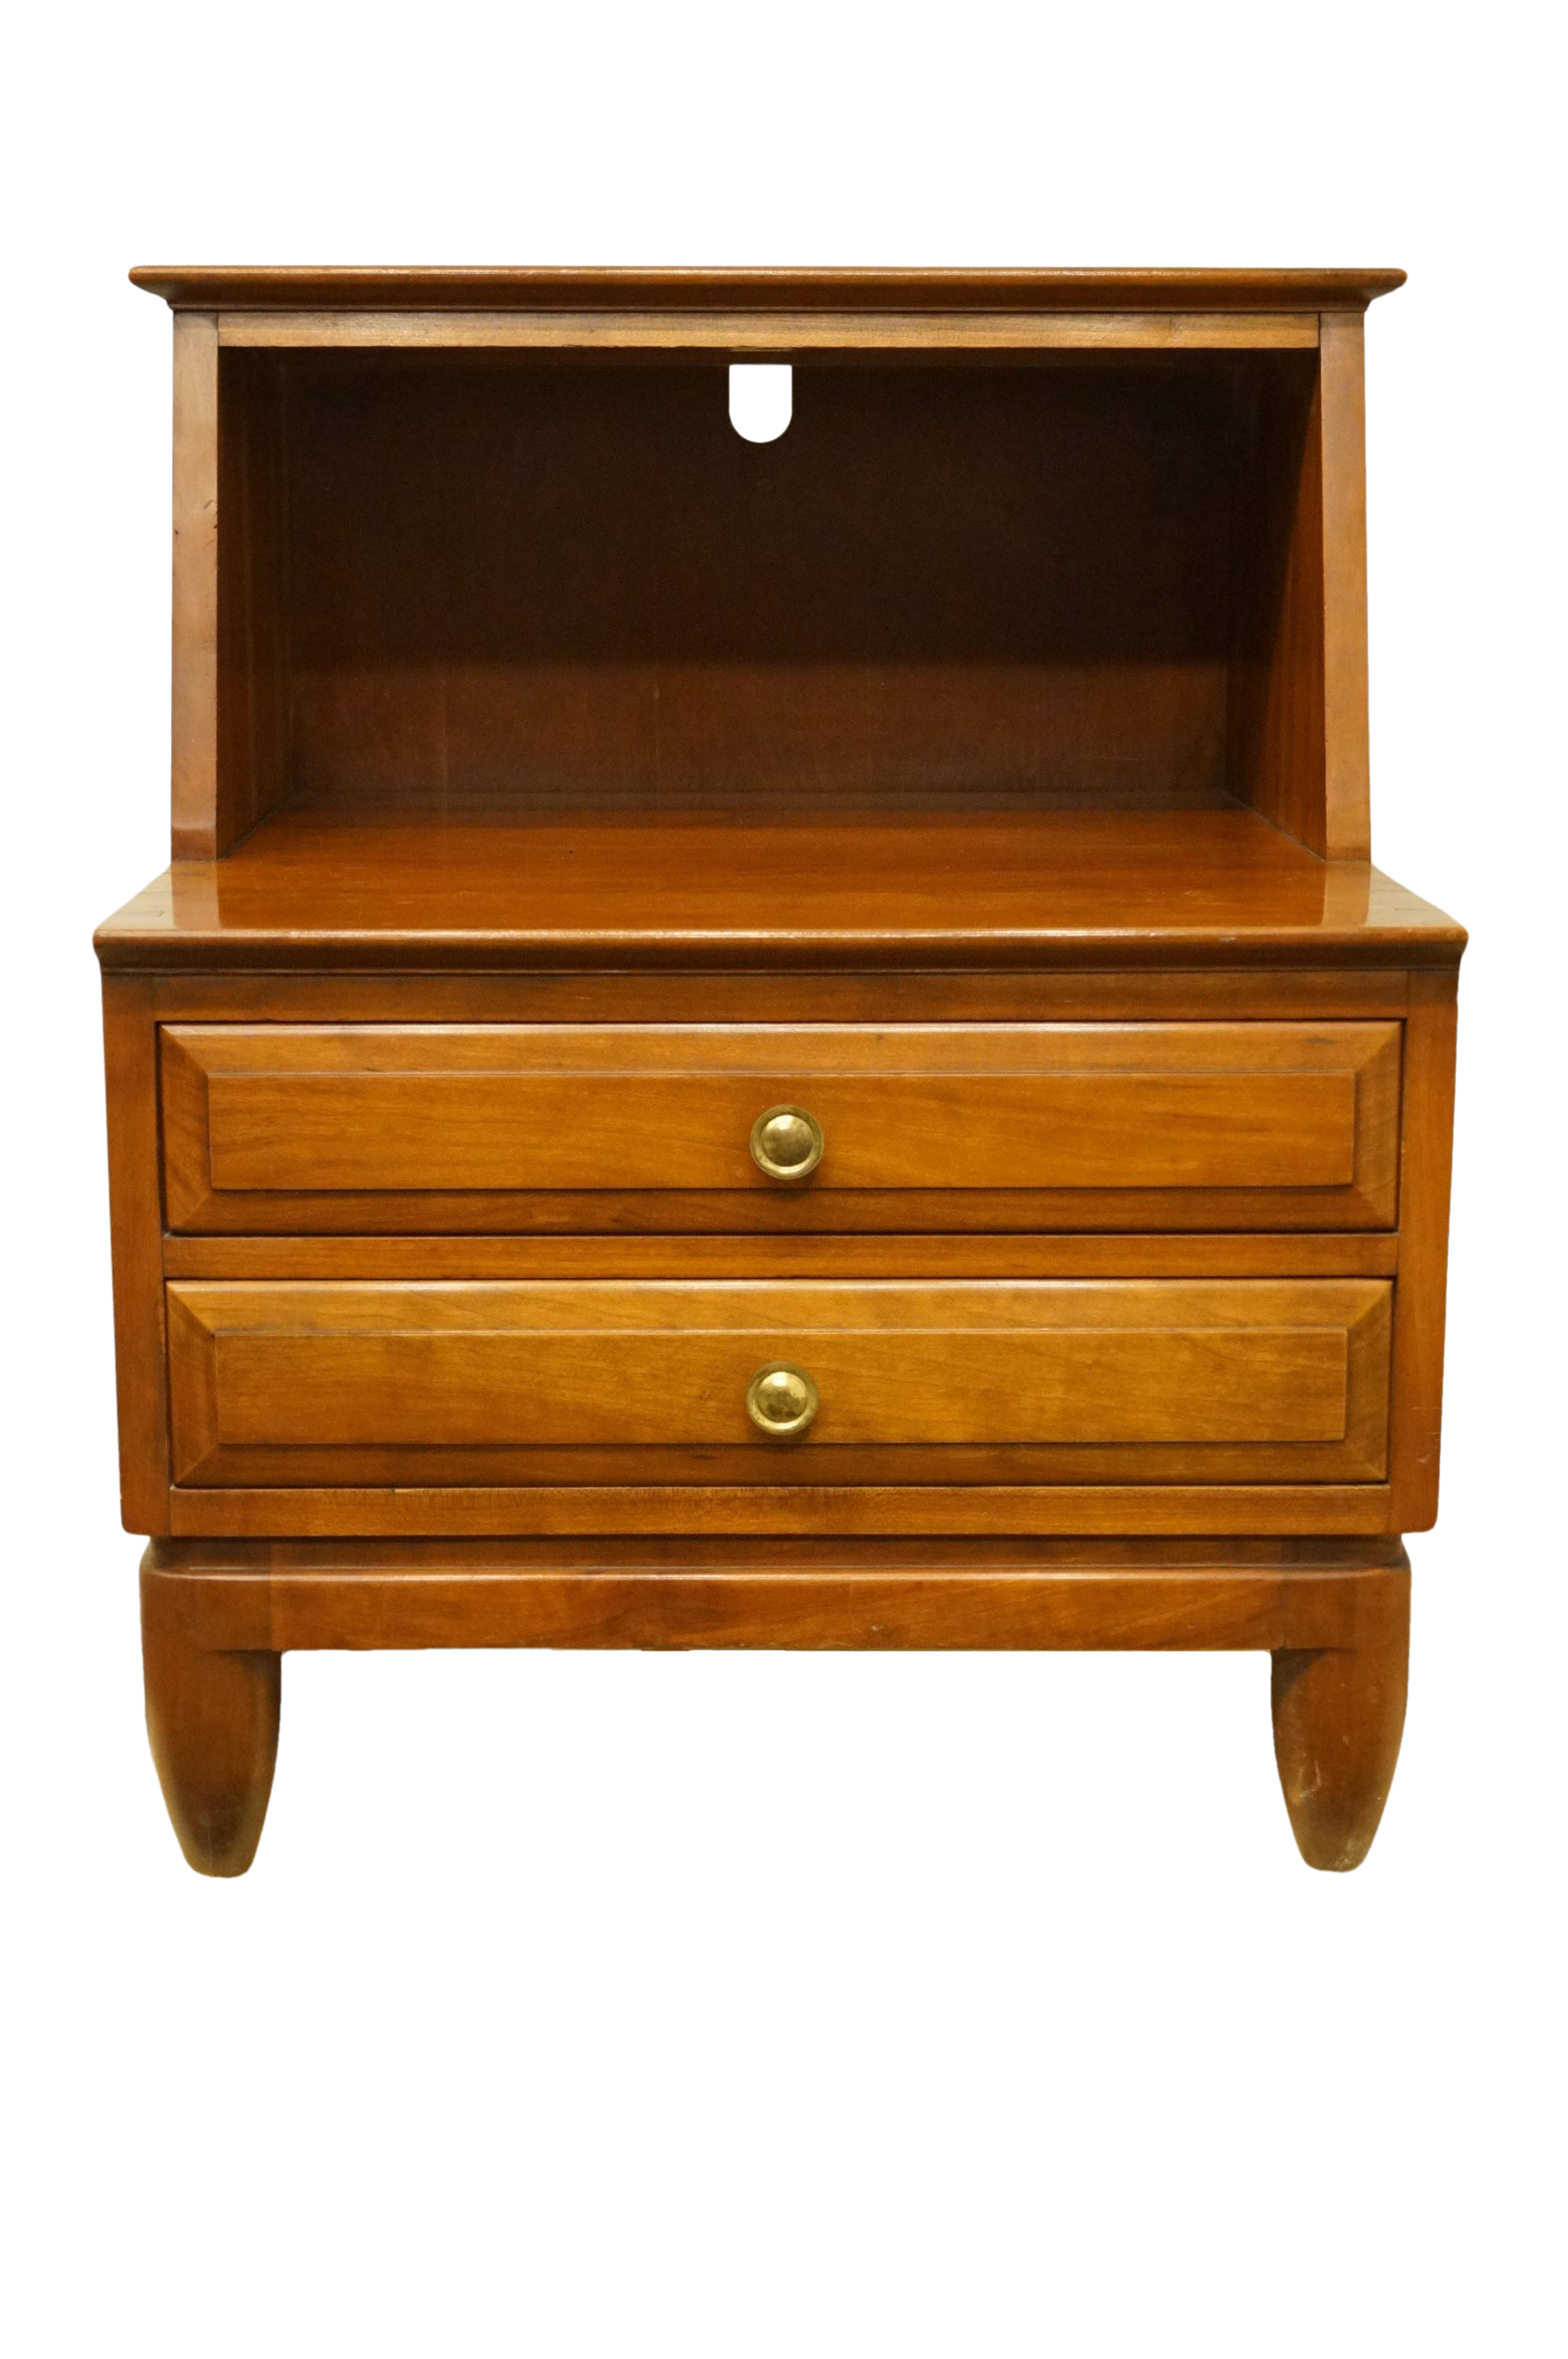 20th Century Traditional Willett Furniture Solid Cherry 22 Open Cabinet Nightstand